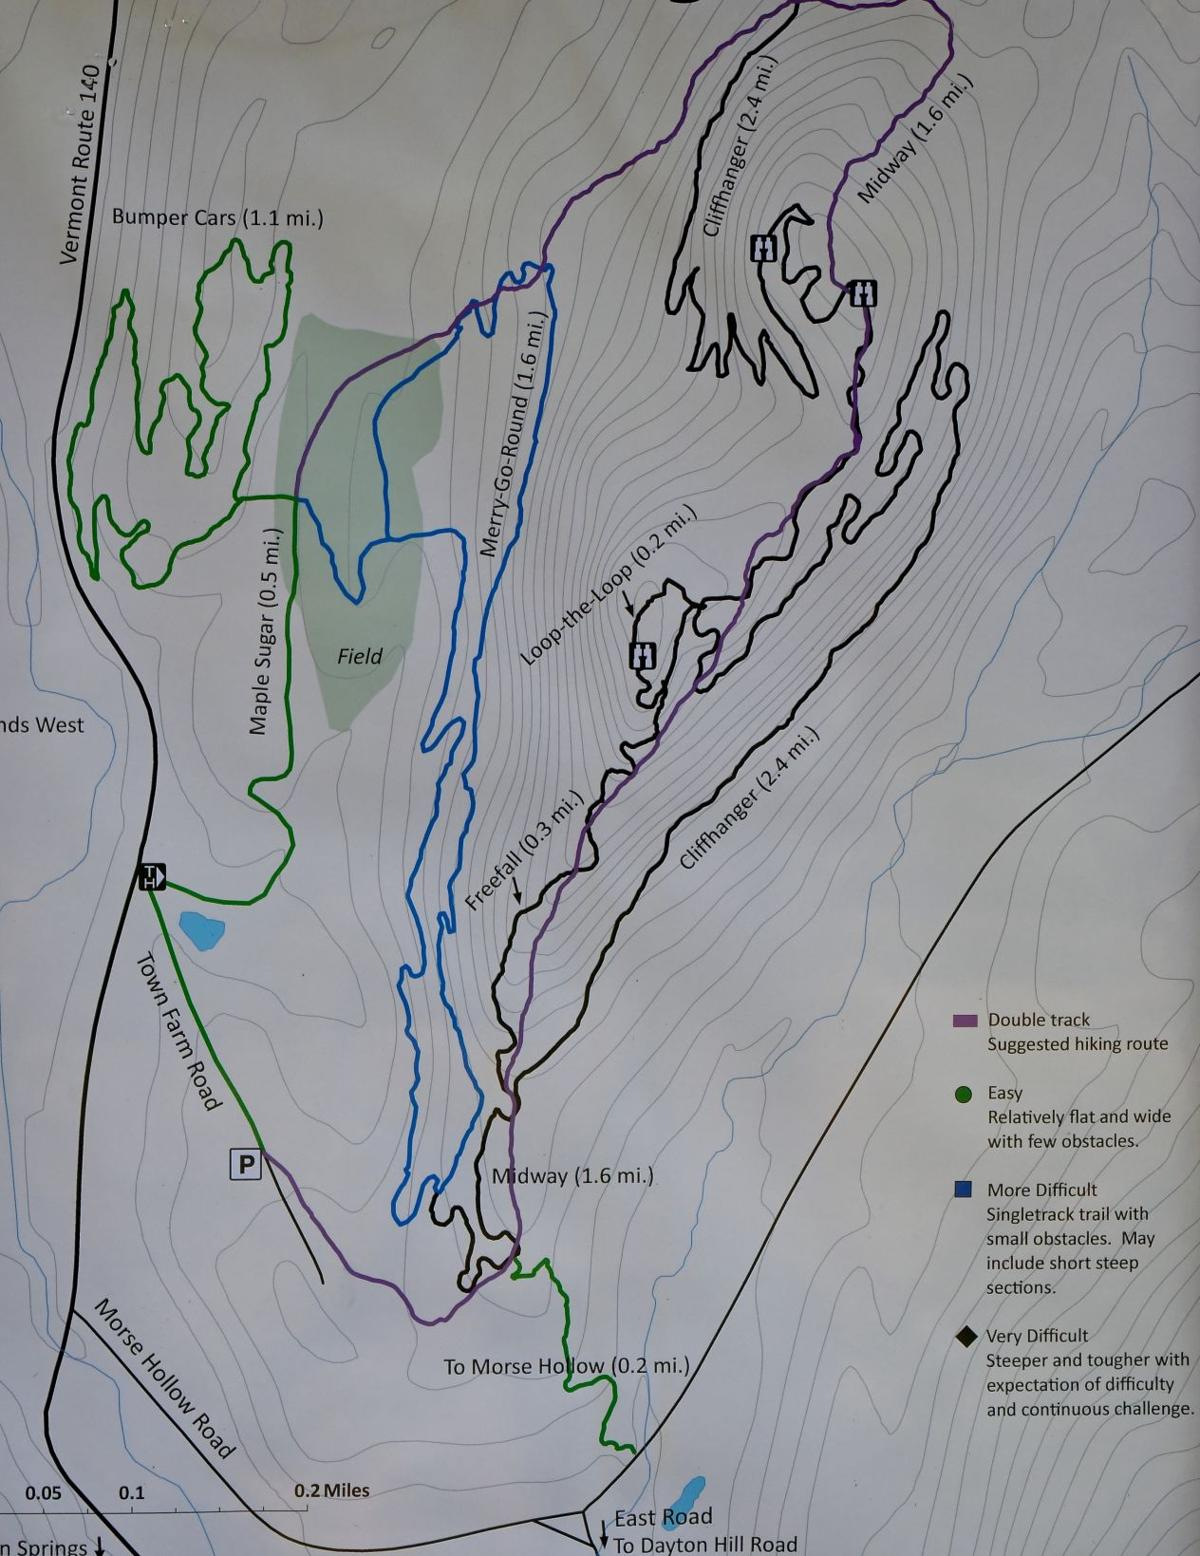 Breaking trails: Slate Valley Trails to open latest extension